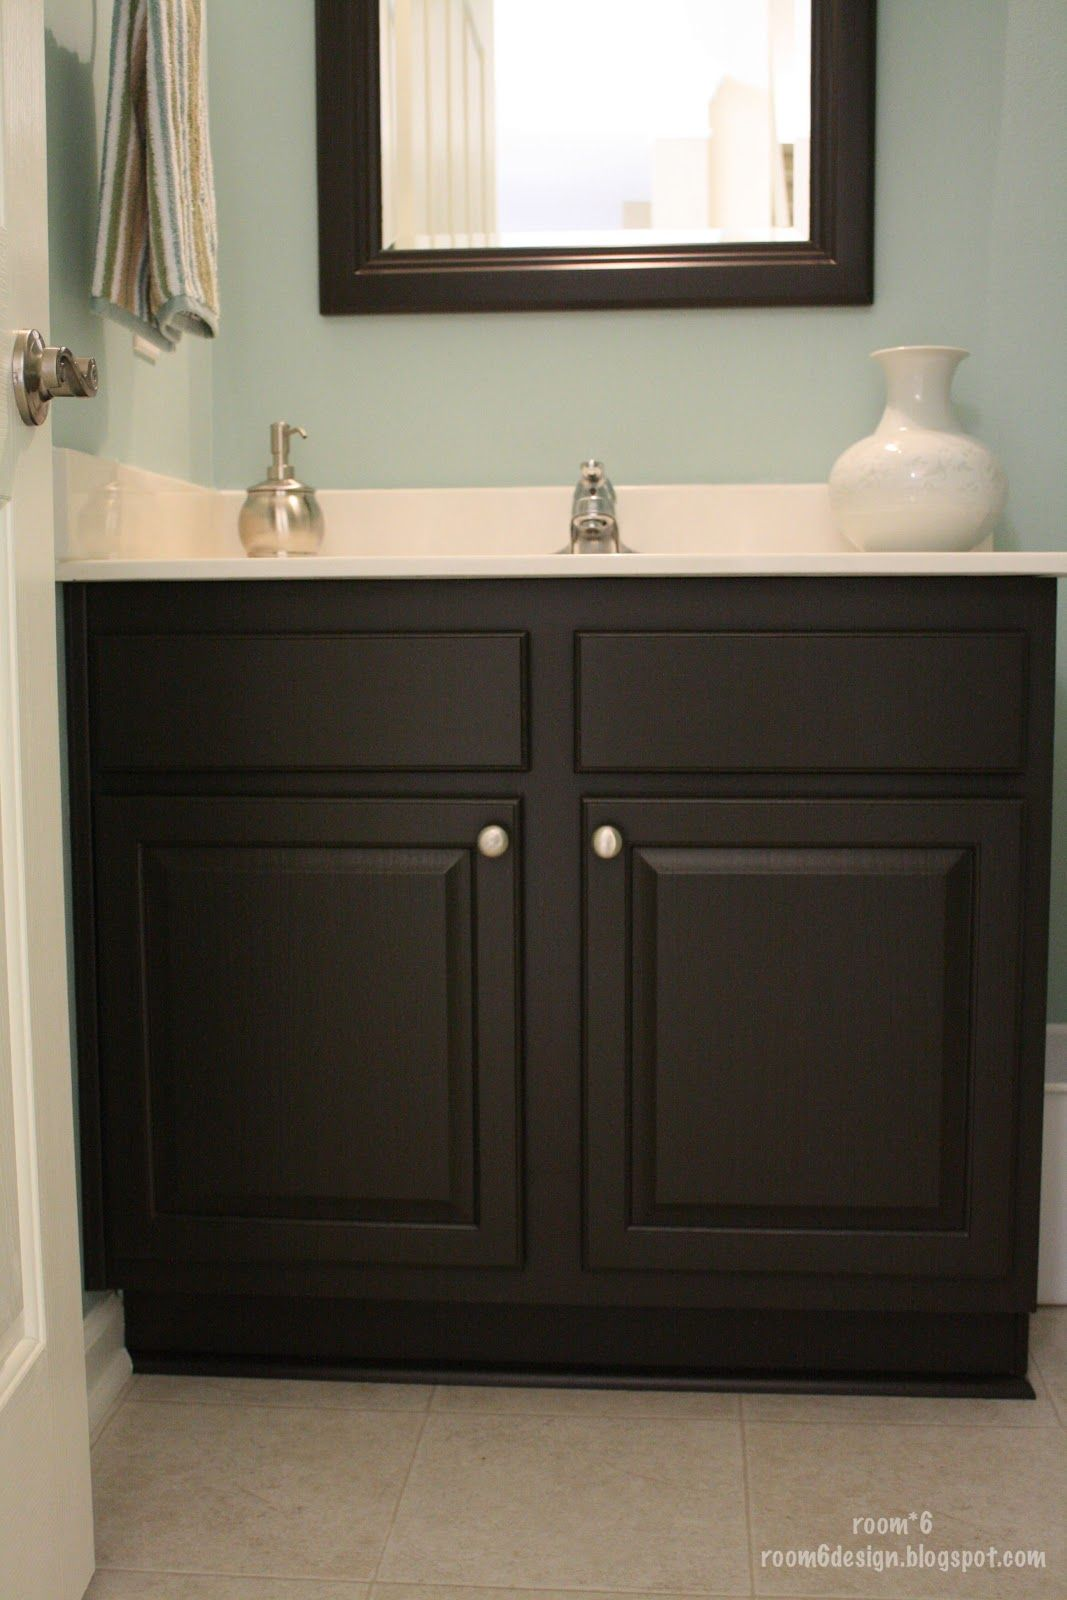 room*9: The Powder Room is FINISHED!  Bathroom cabinet colors